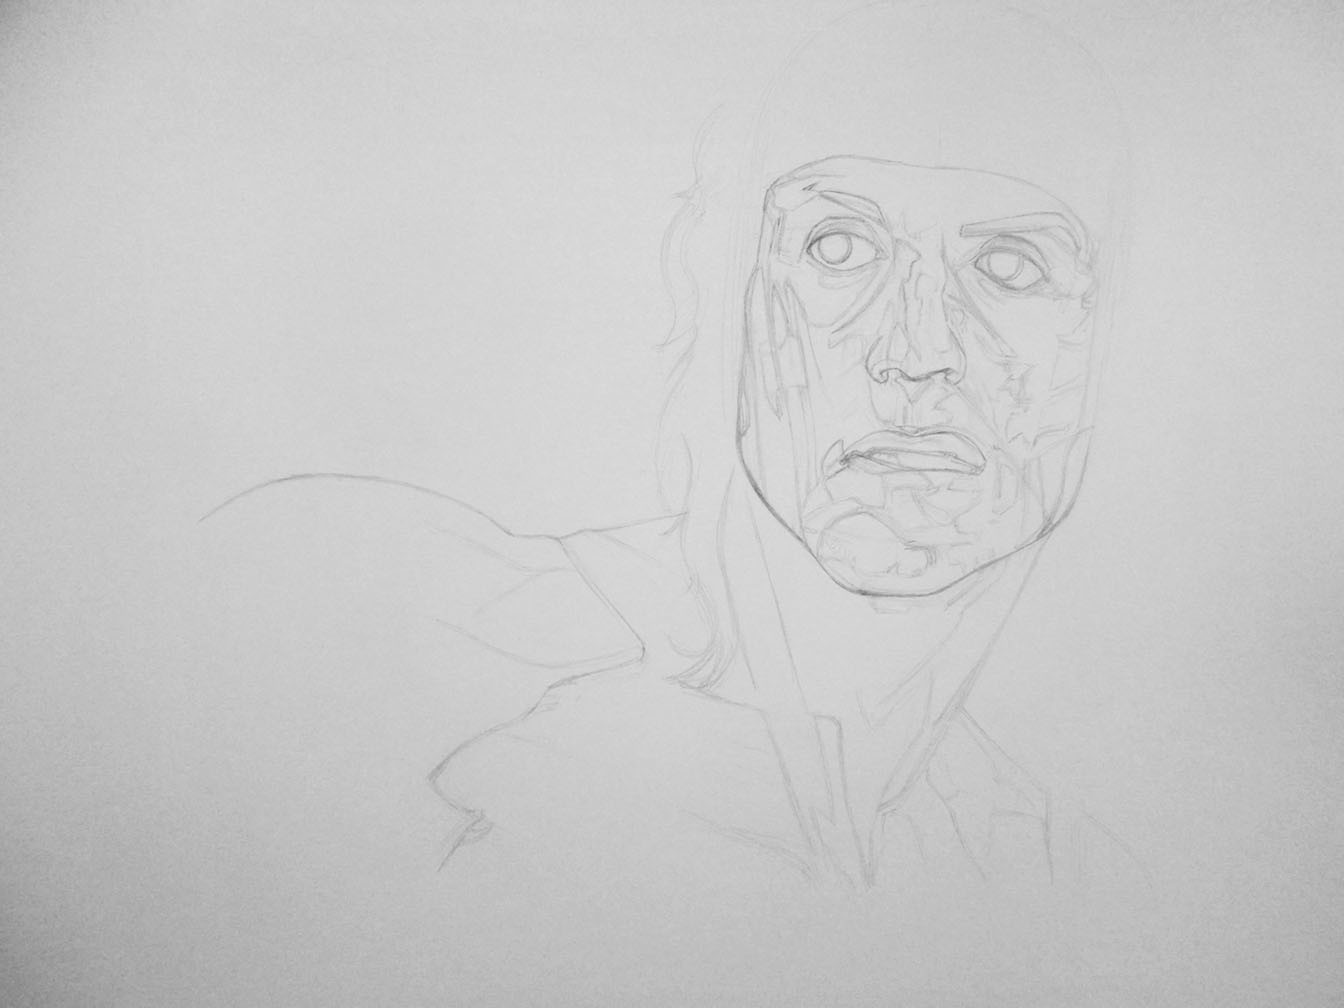 Starting the drawing.